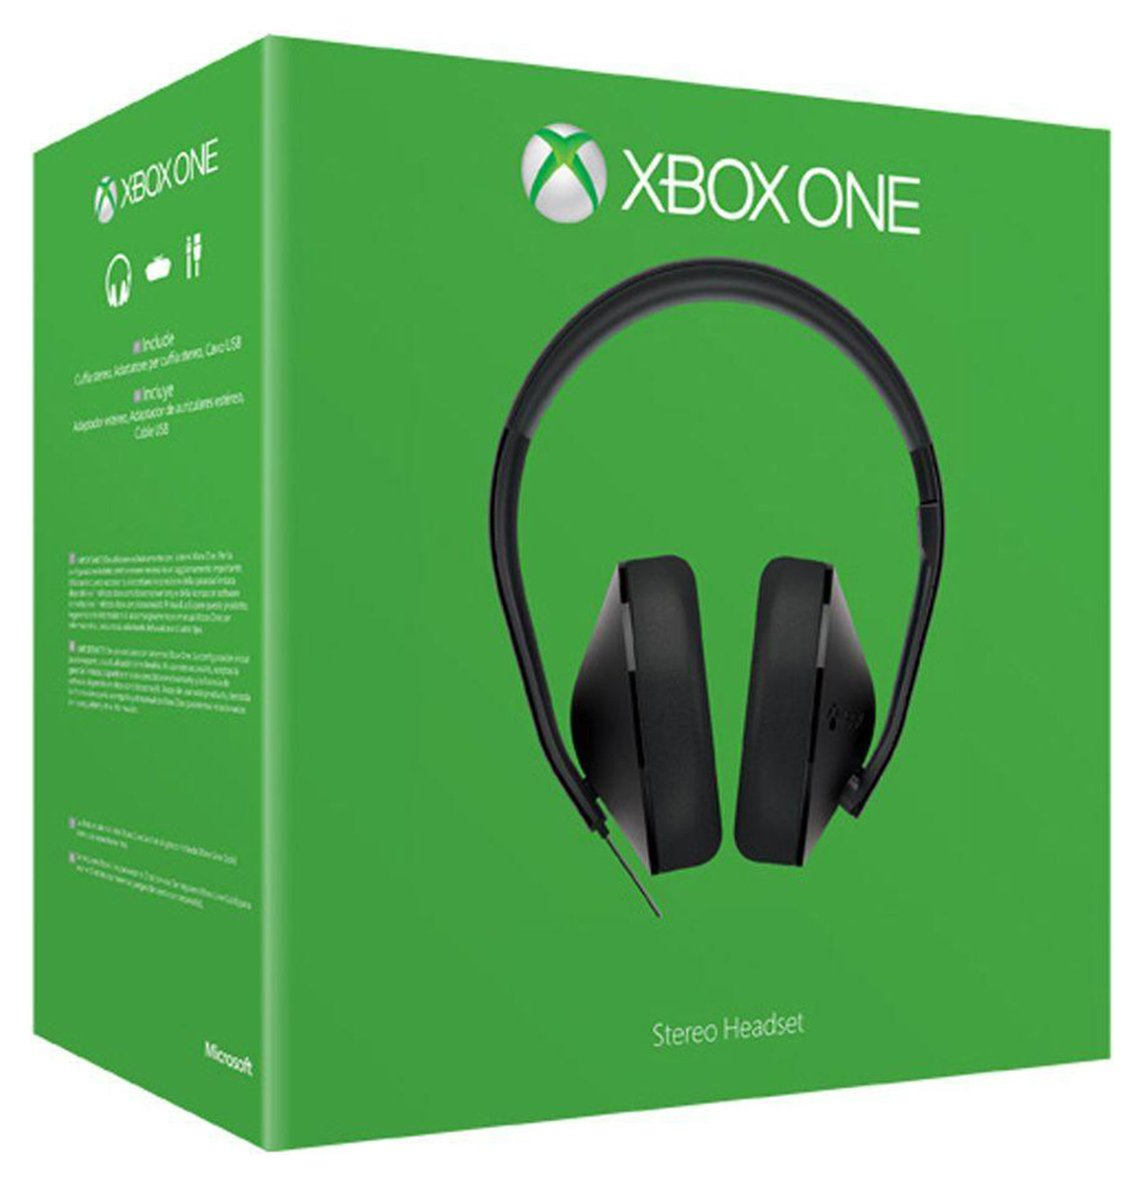 Xbox One Headset Over Ear Stereo